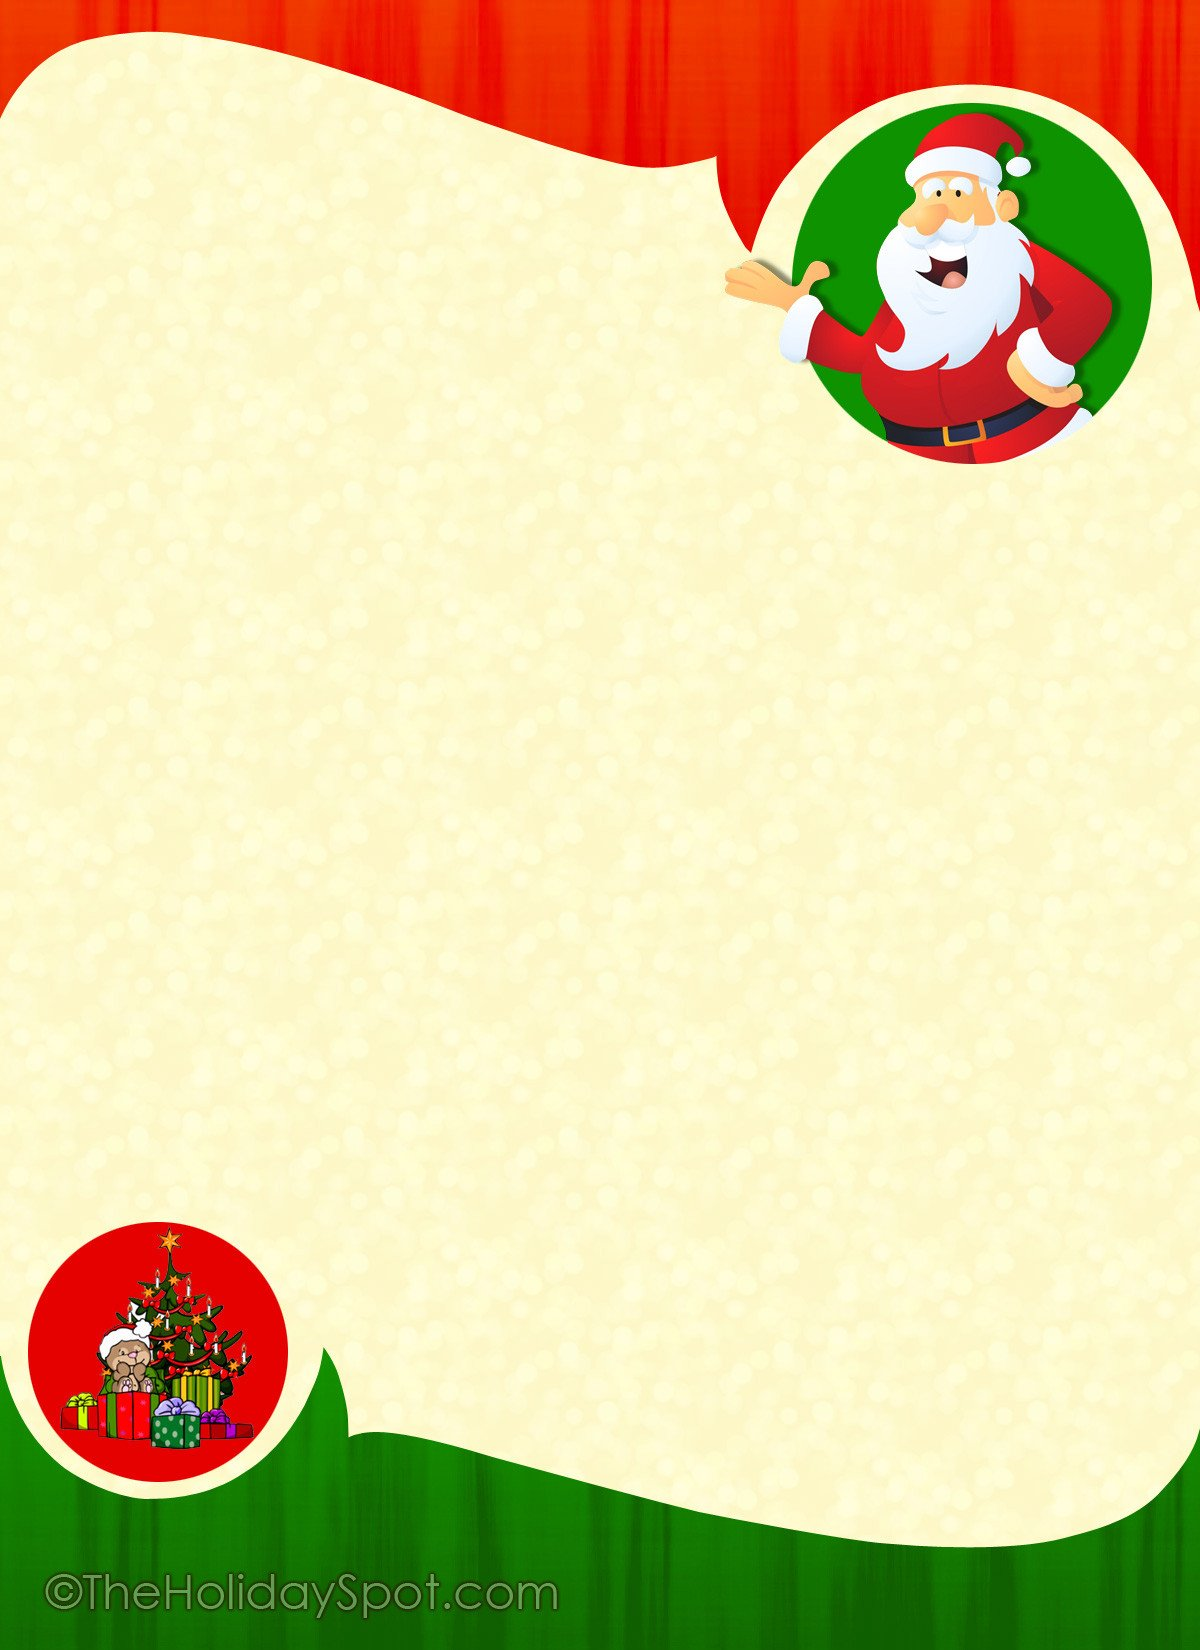 Free Christmas Stationery Templates Free Free Downloadable Stationery Borders Download Free